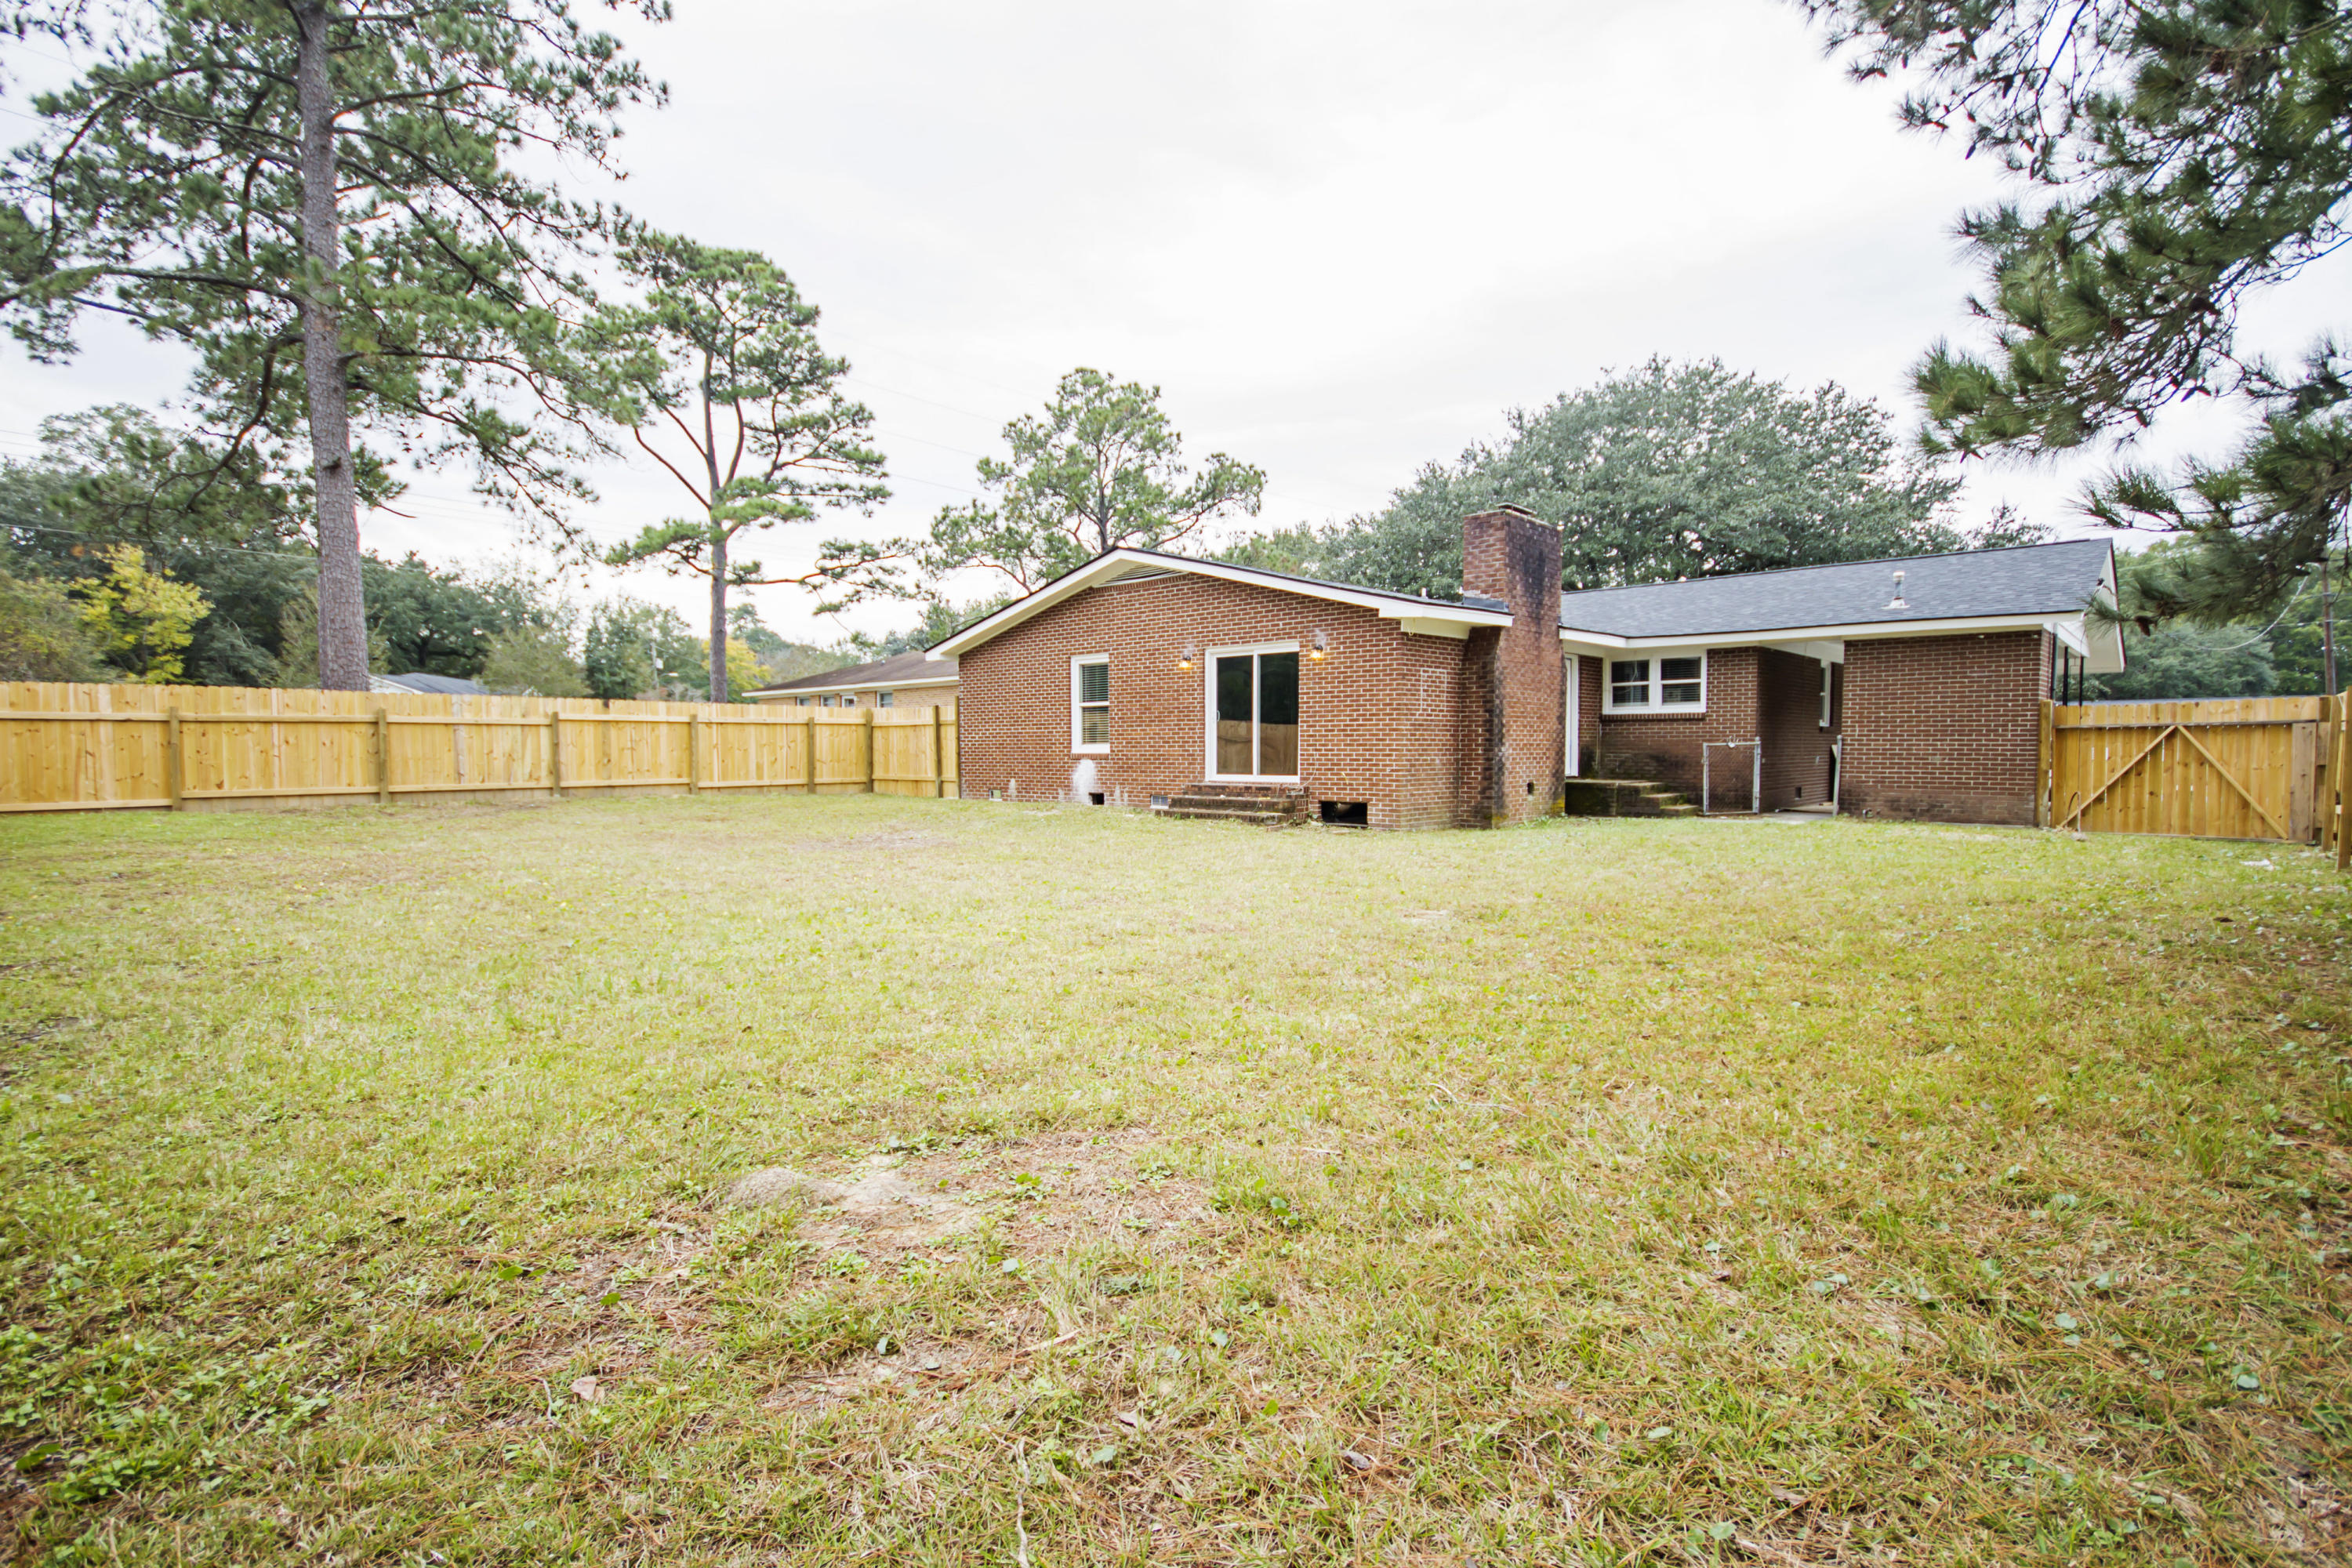 Photo of 5106 Pittman St, North Charleston, SC 29405